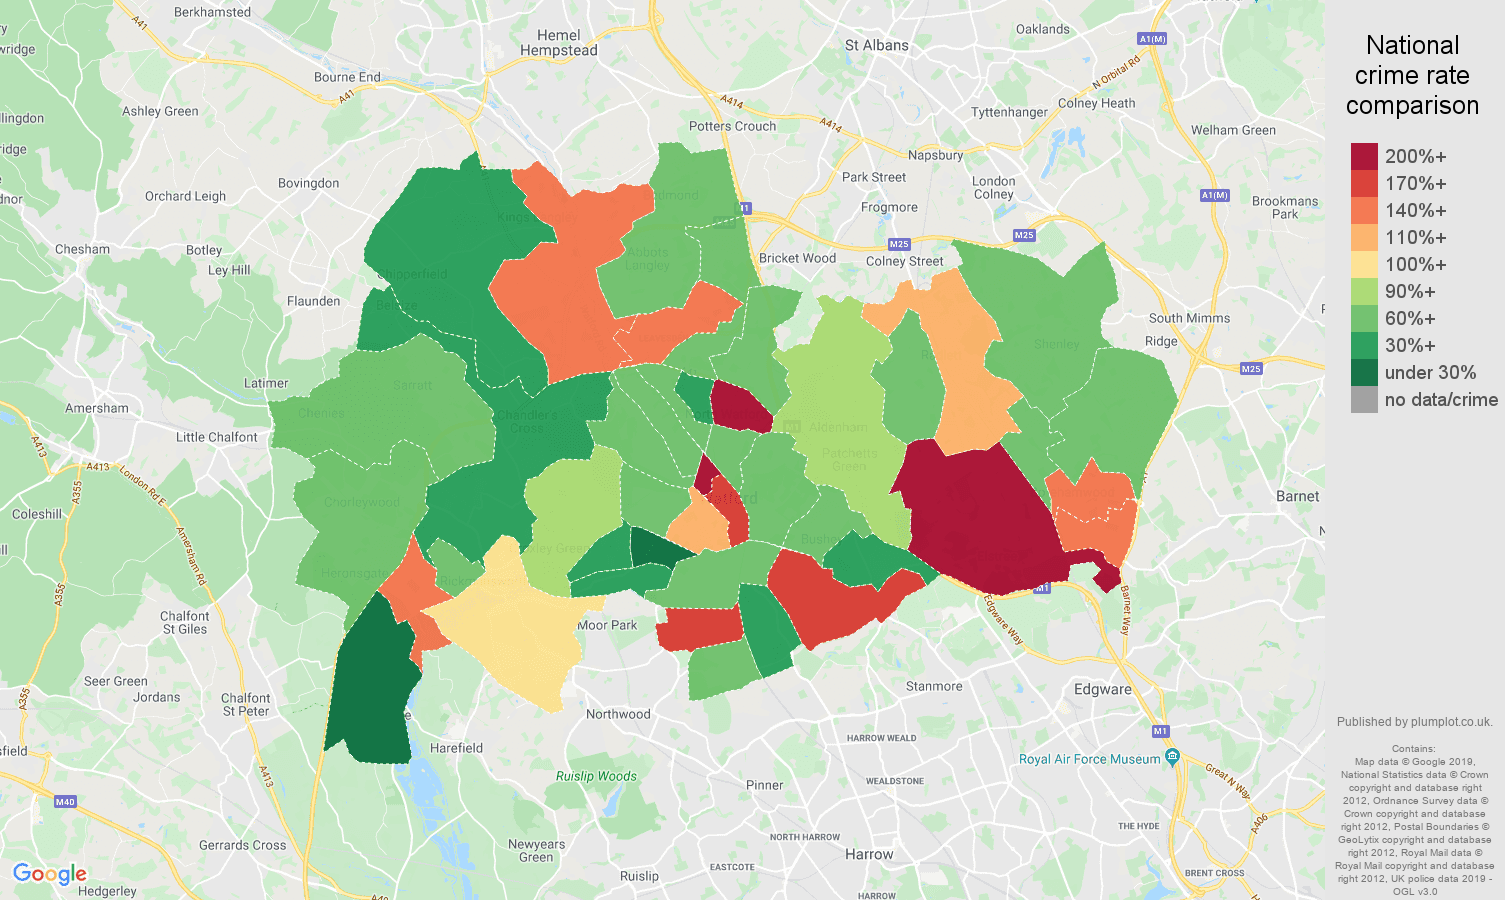 Watford other theft crime rate comparison map